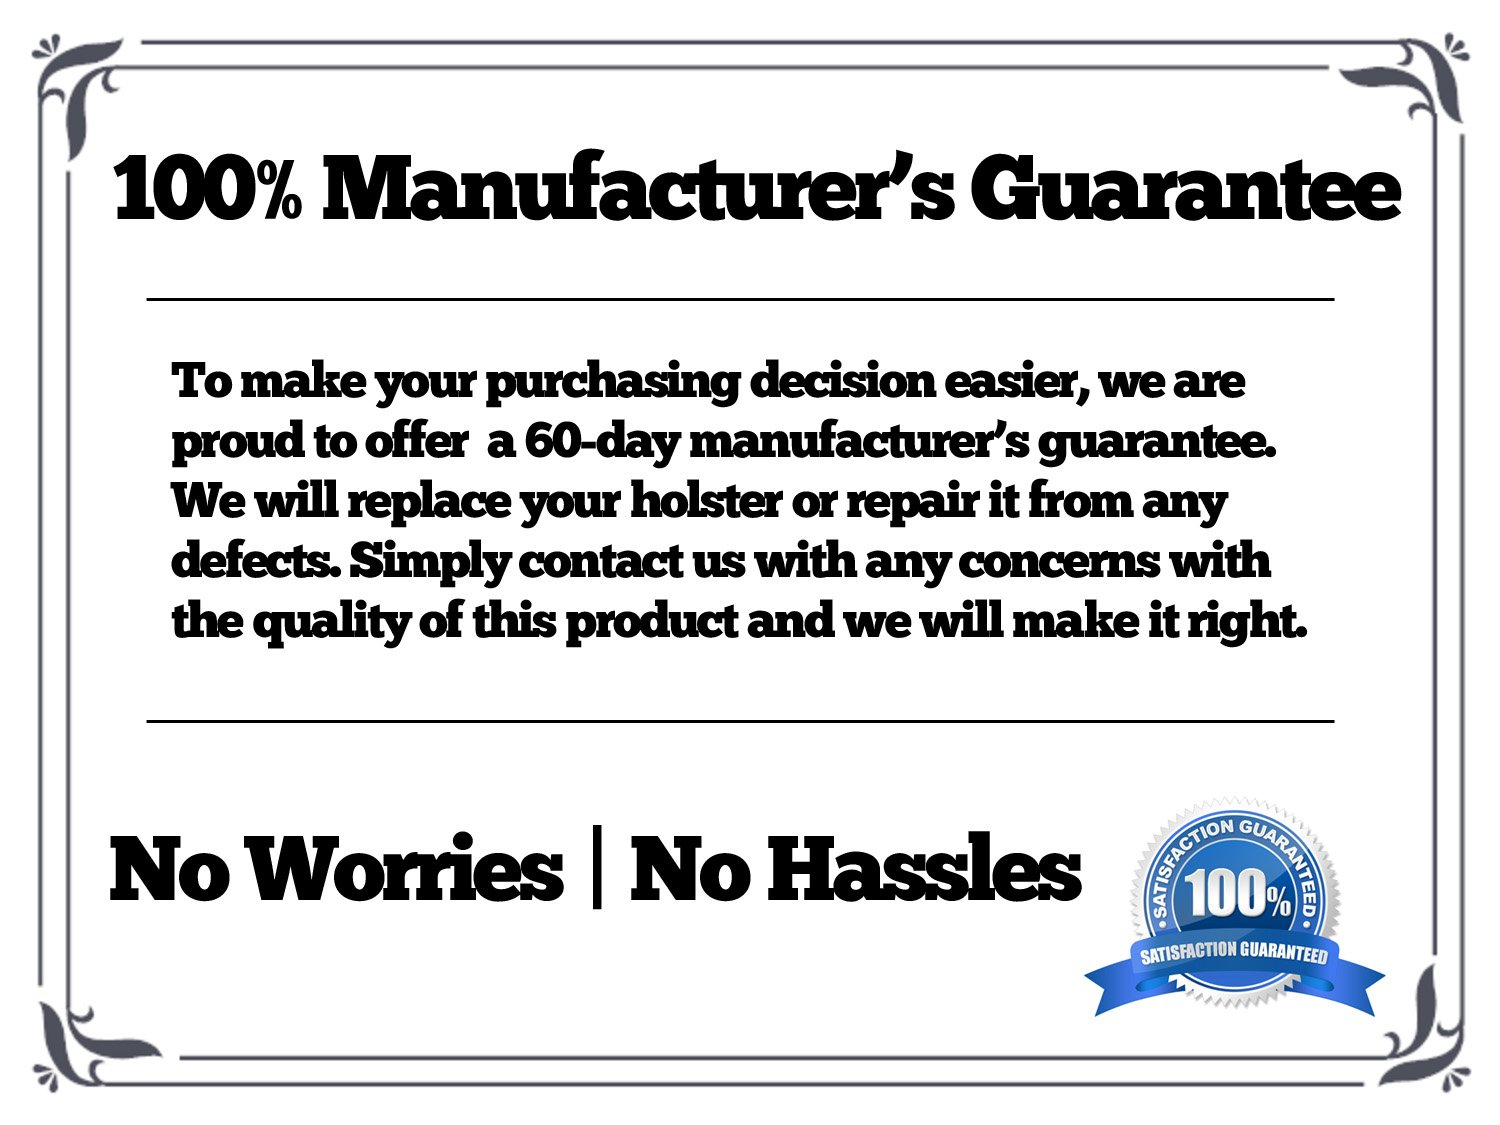 Manufacturer's Guarantee